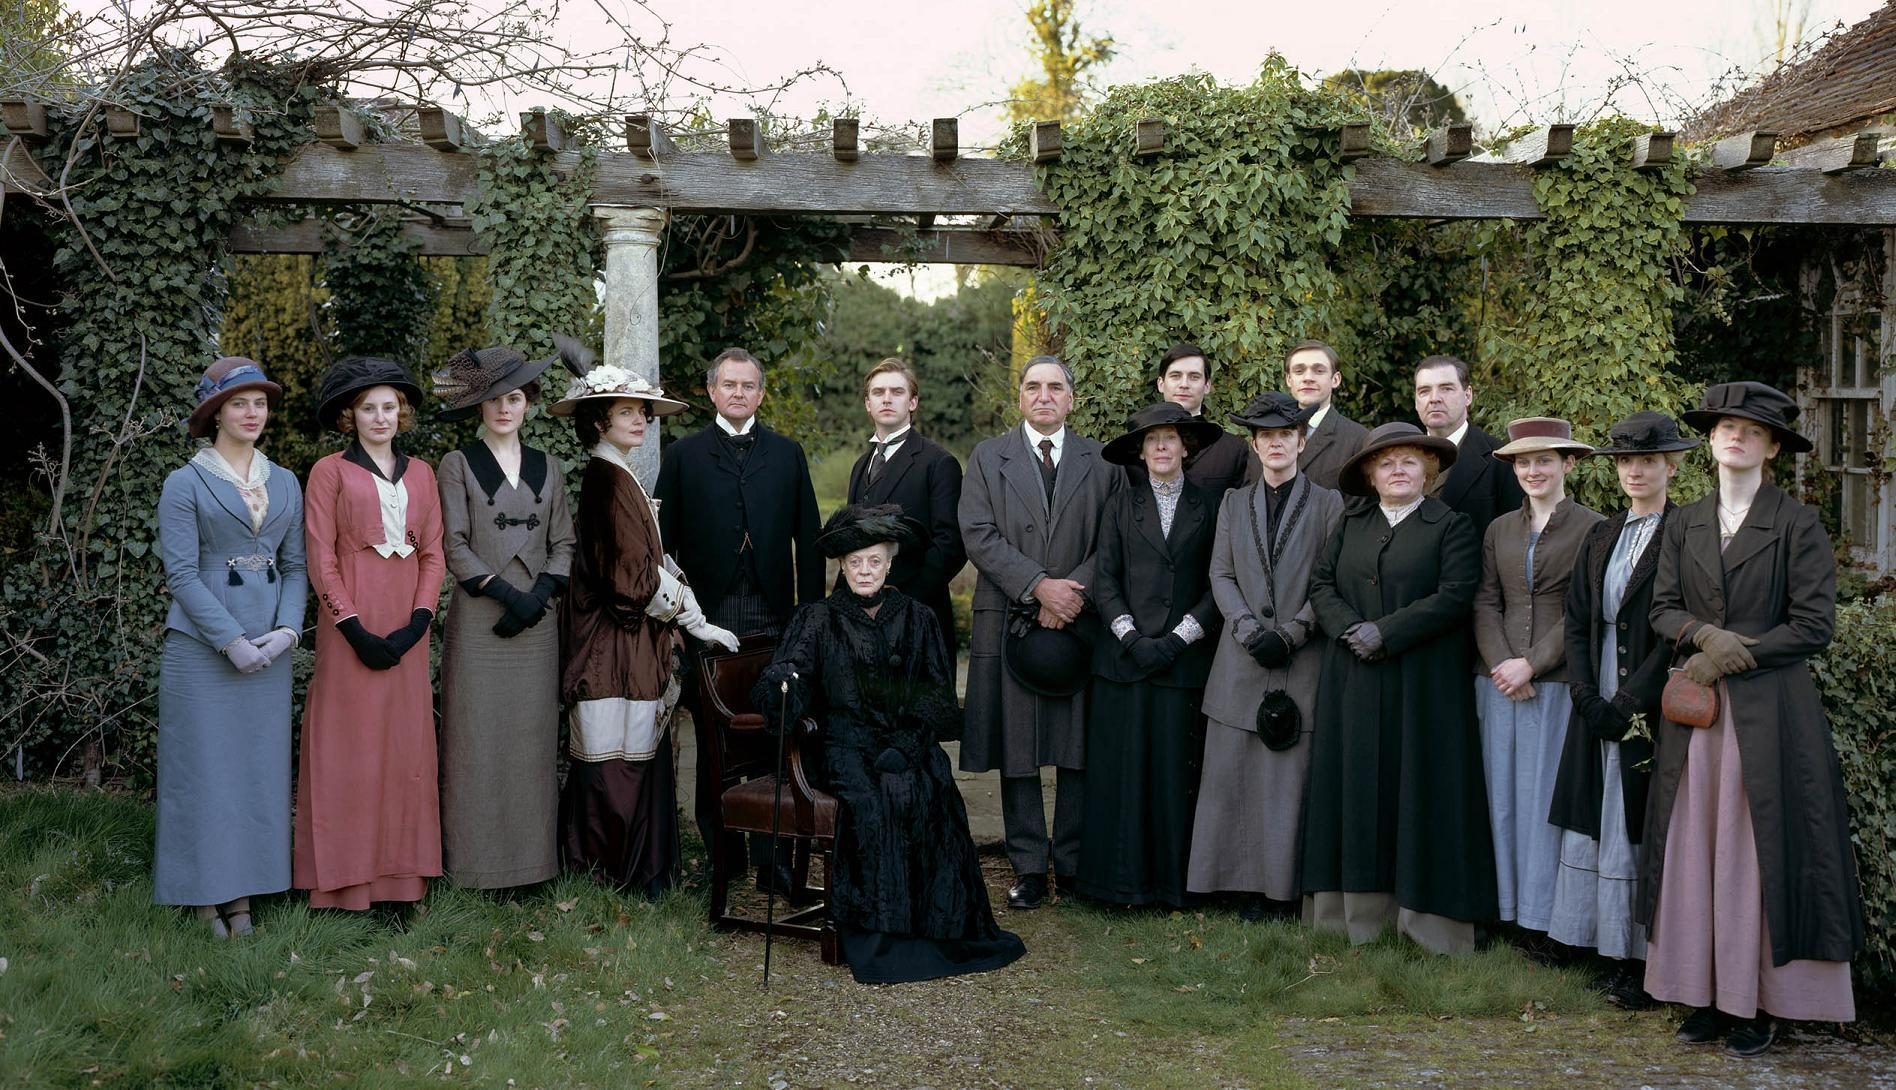 Downton Abbey's Cast